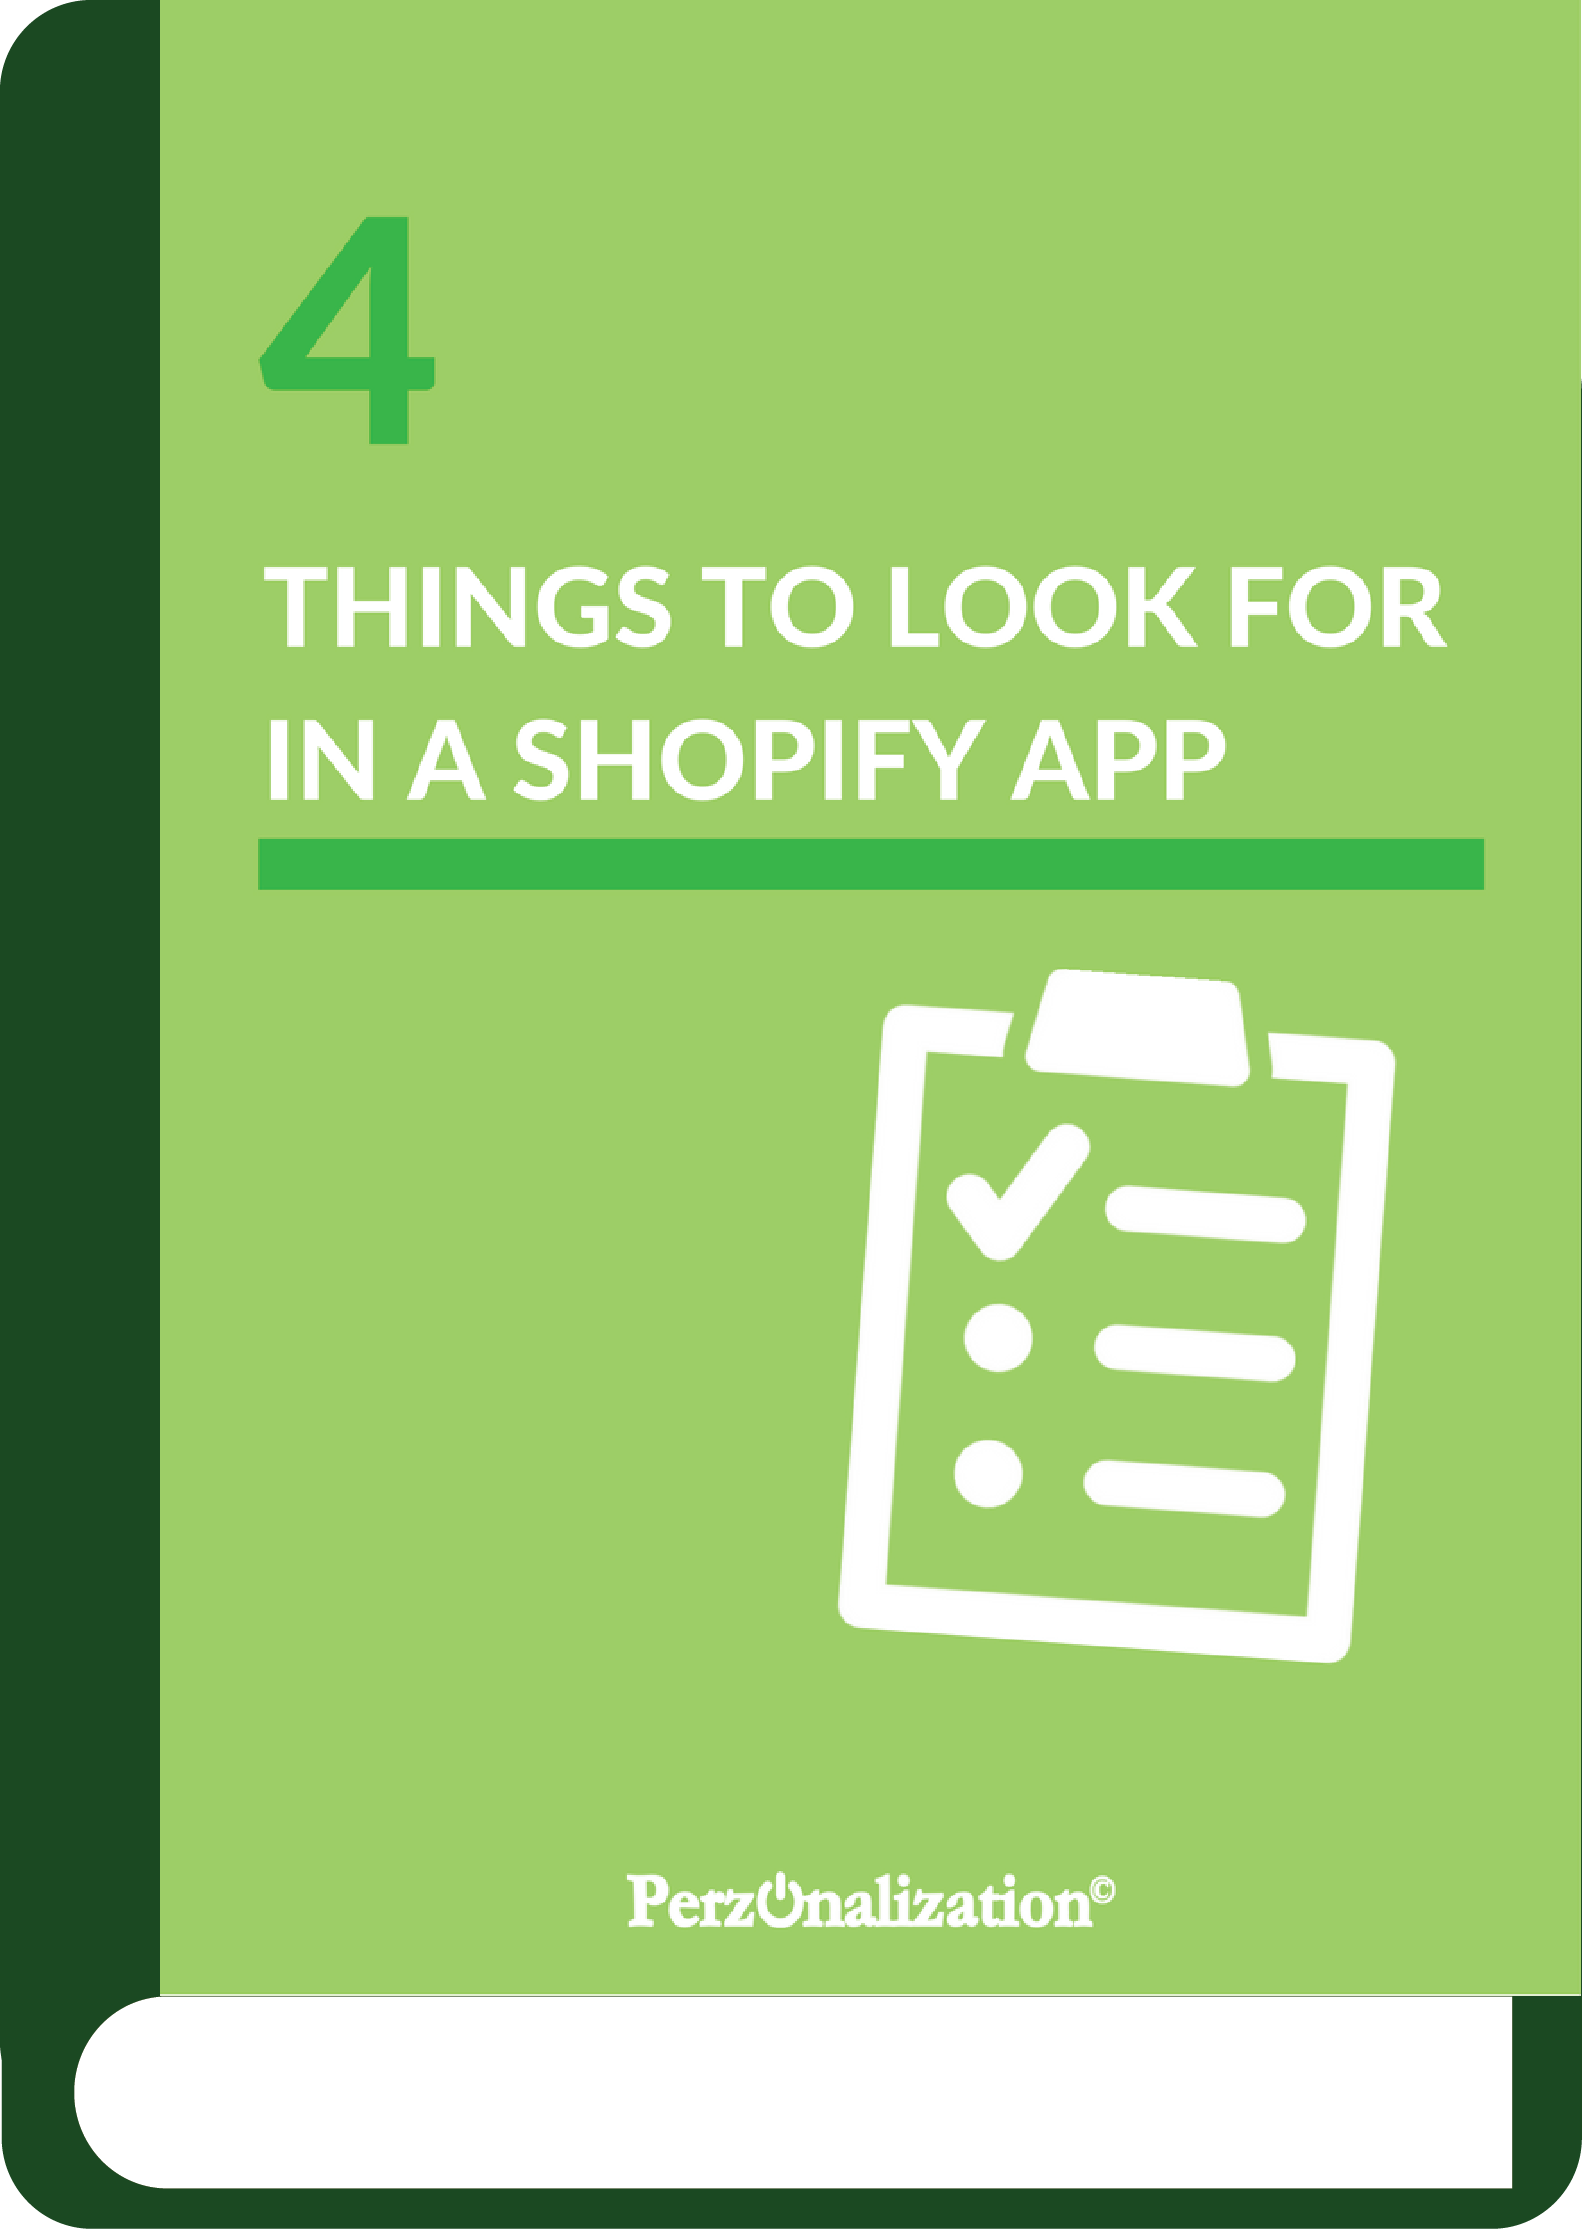 If you're running an online store on Shopify chances are you're looking for some apps to help you with your daily business. This eBook will help you choose the best shopify apps for your business.